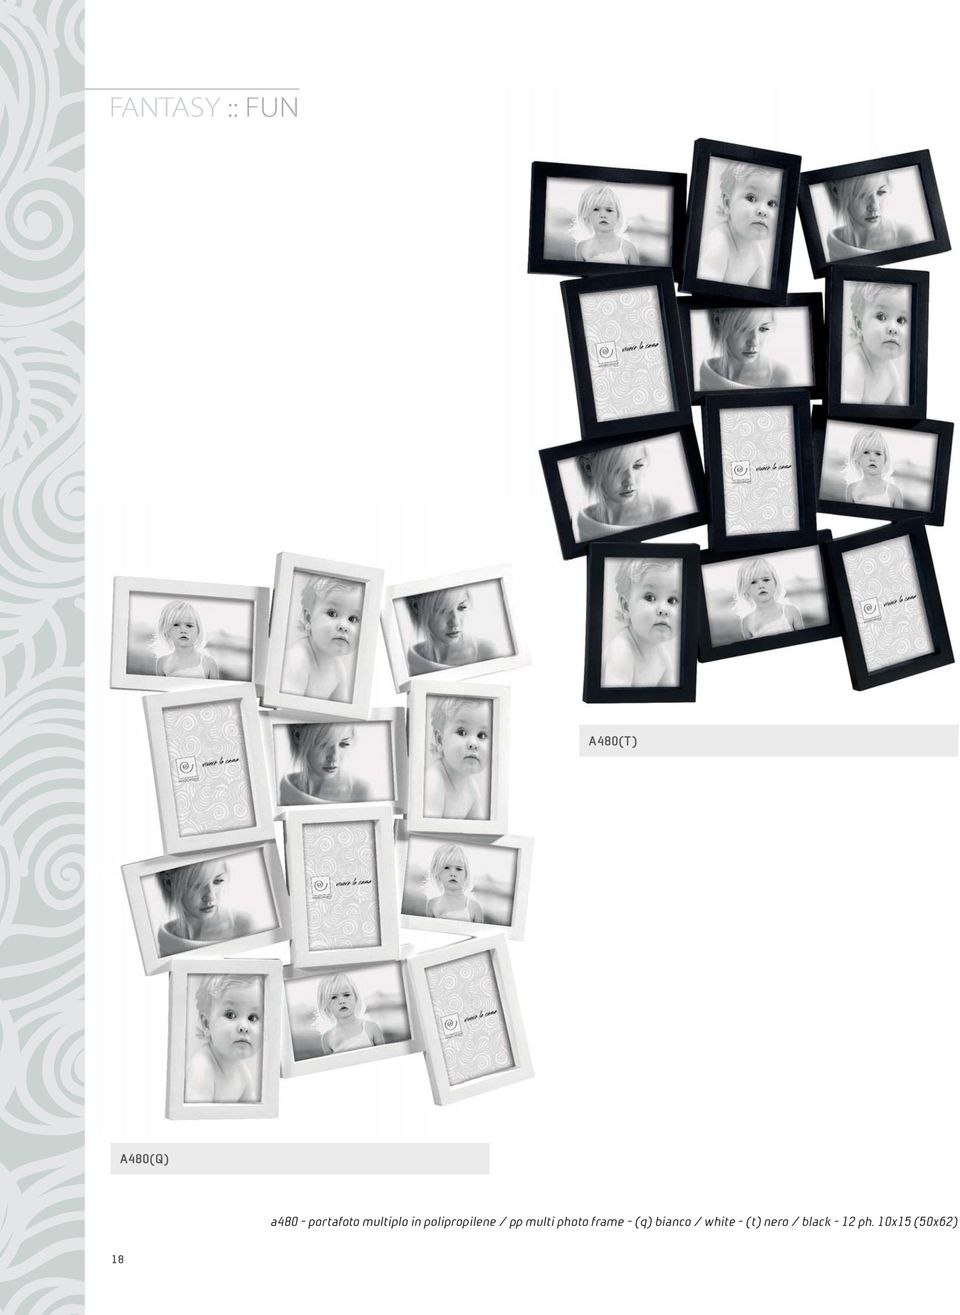 multi photo frame - (q) bianco / white -